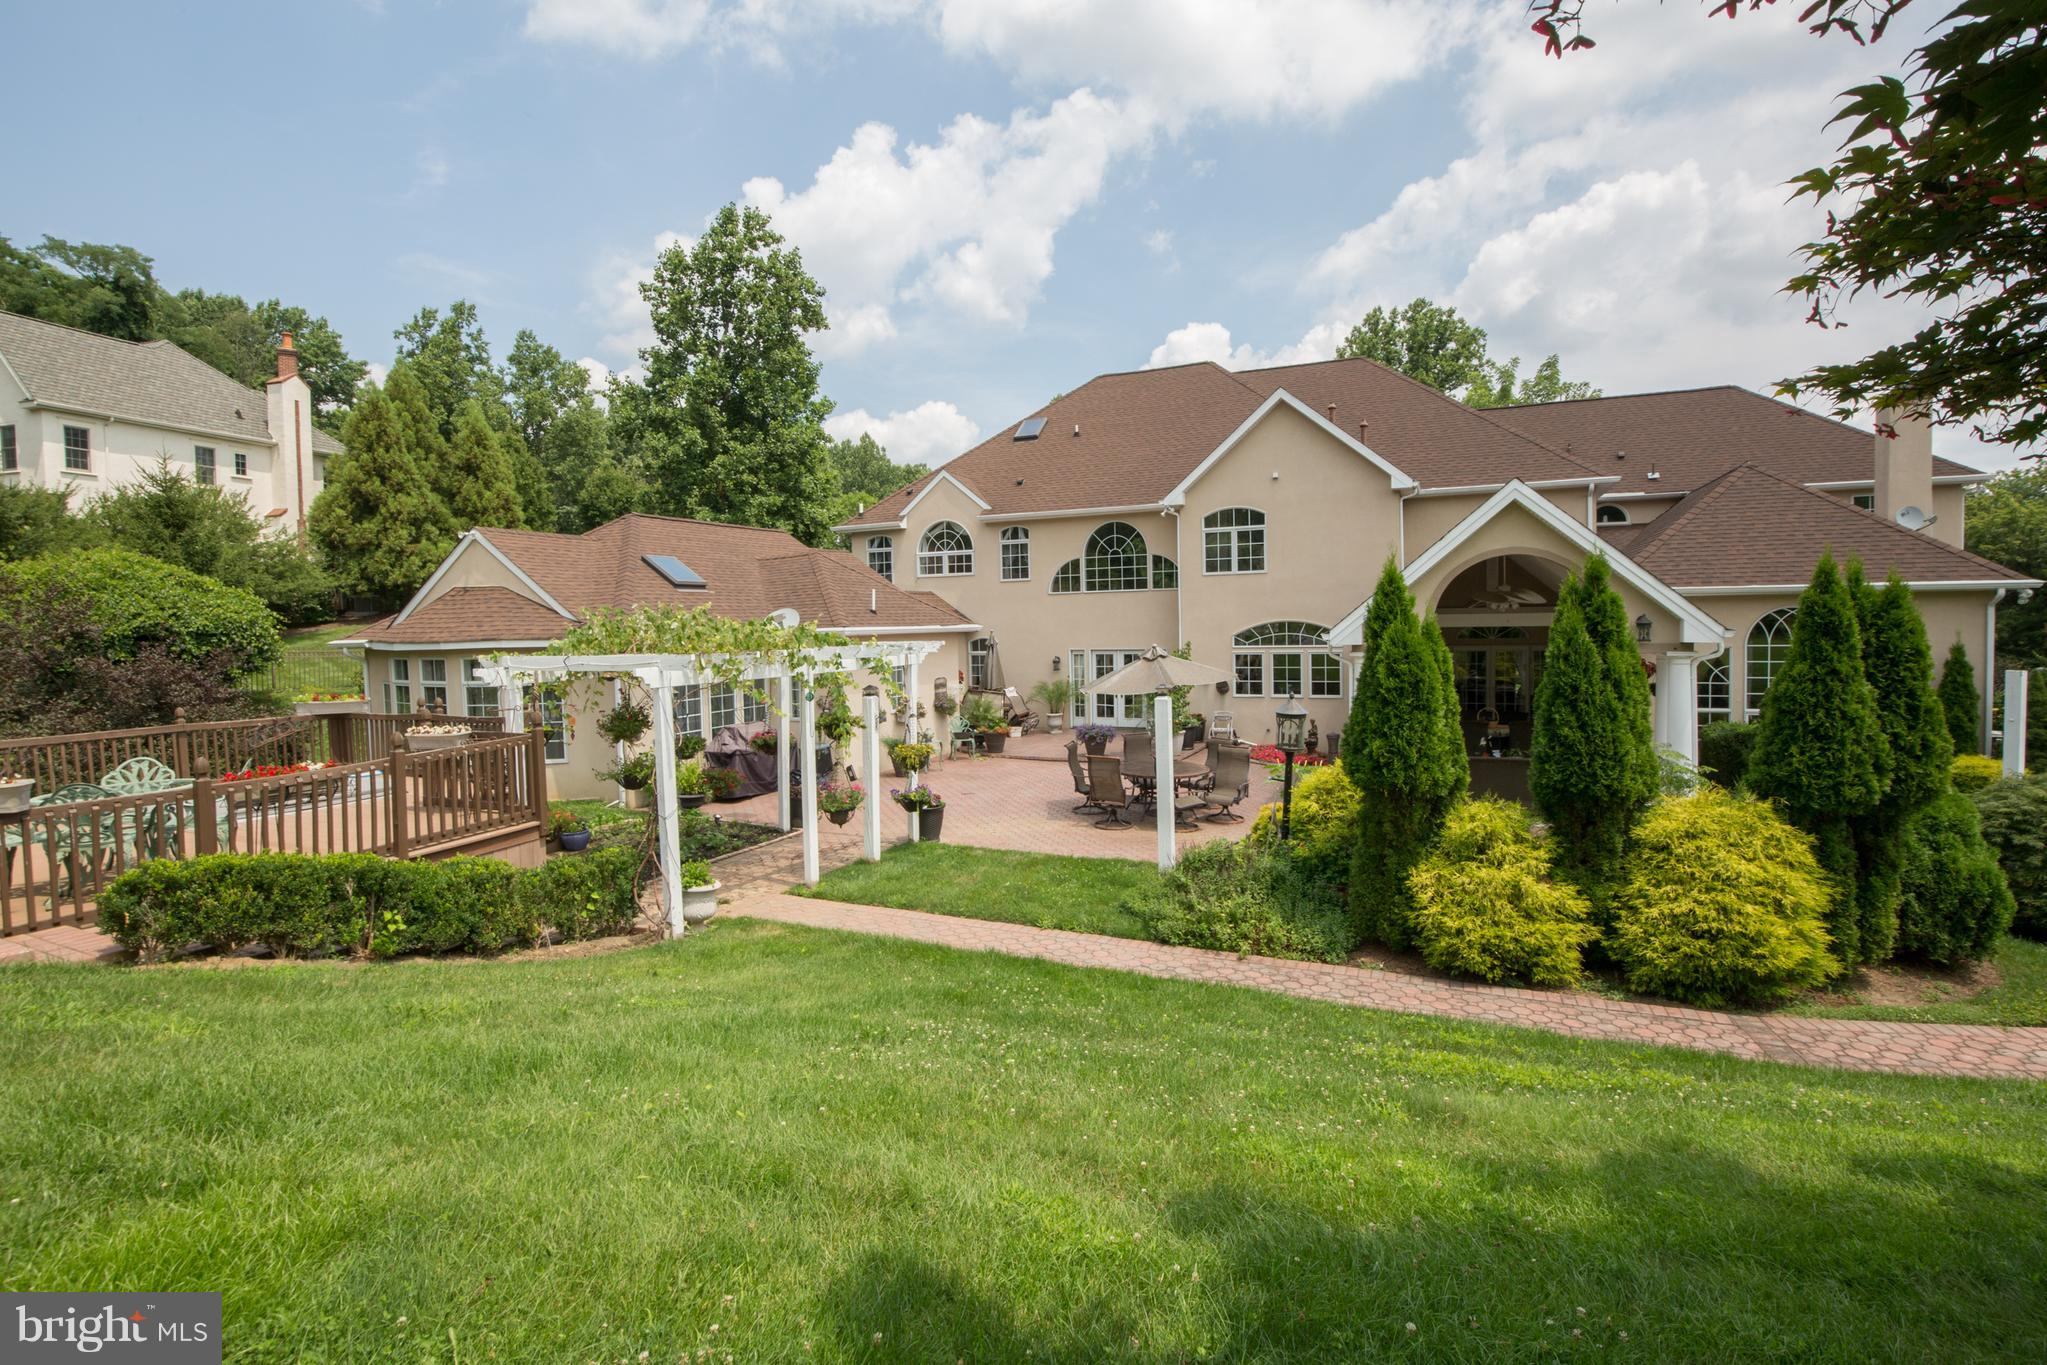 1088 HERKNESS DRIVE, MEADOWBROOK, PA 19046